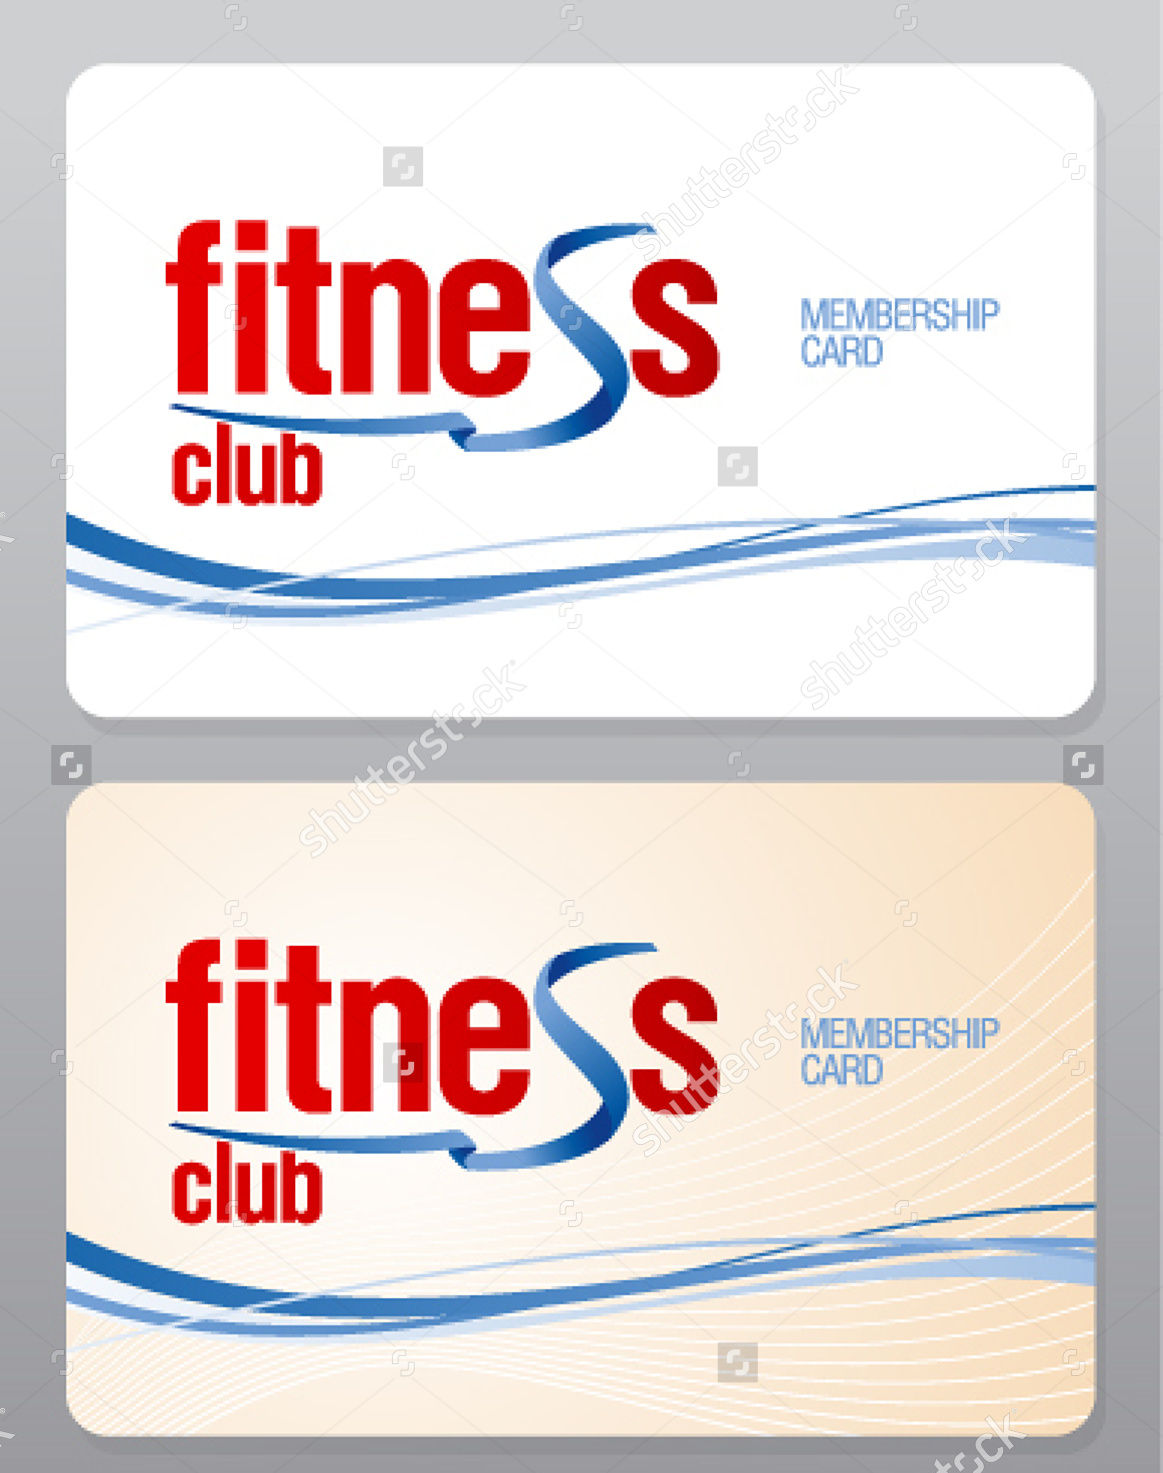 15 Membership Card Designs – Club Card Design